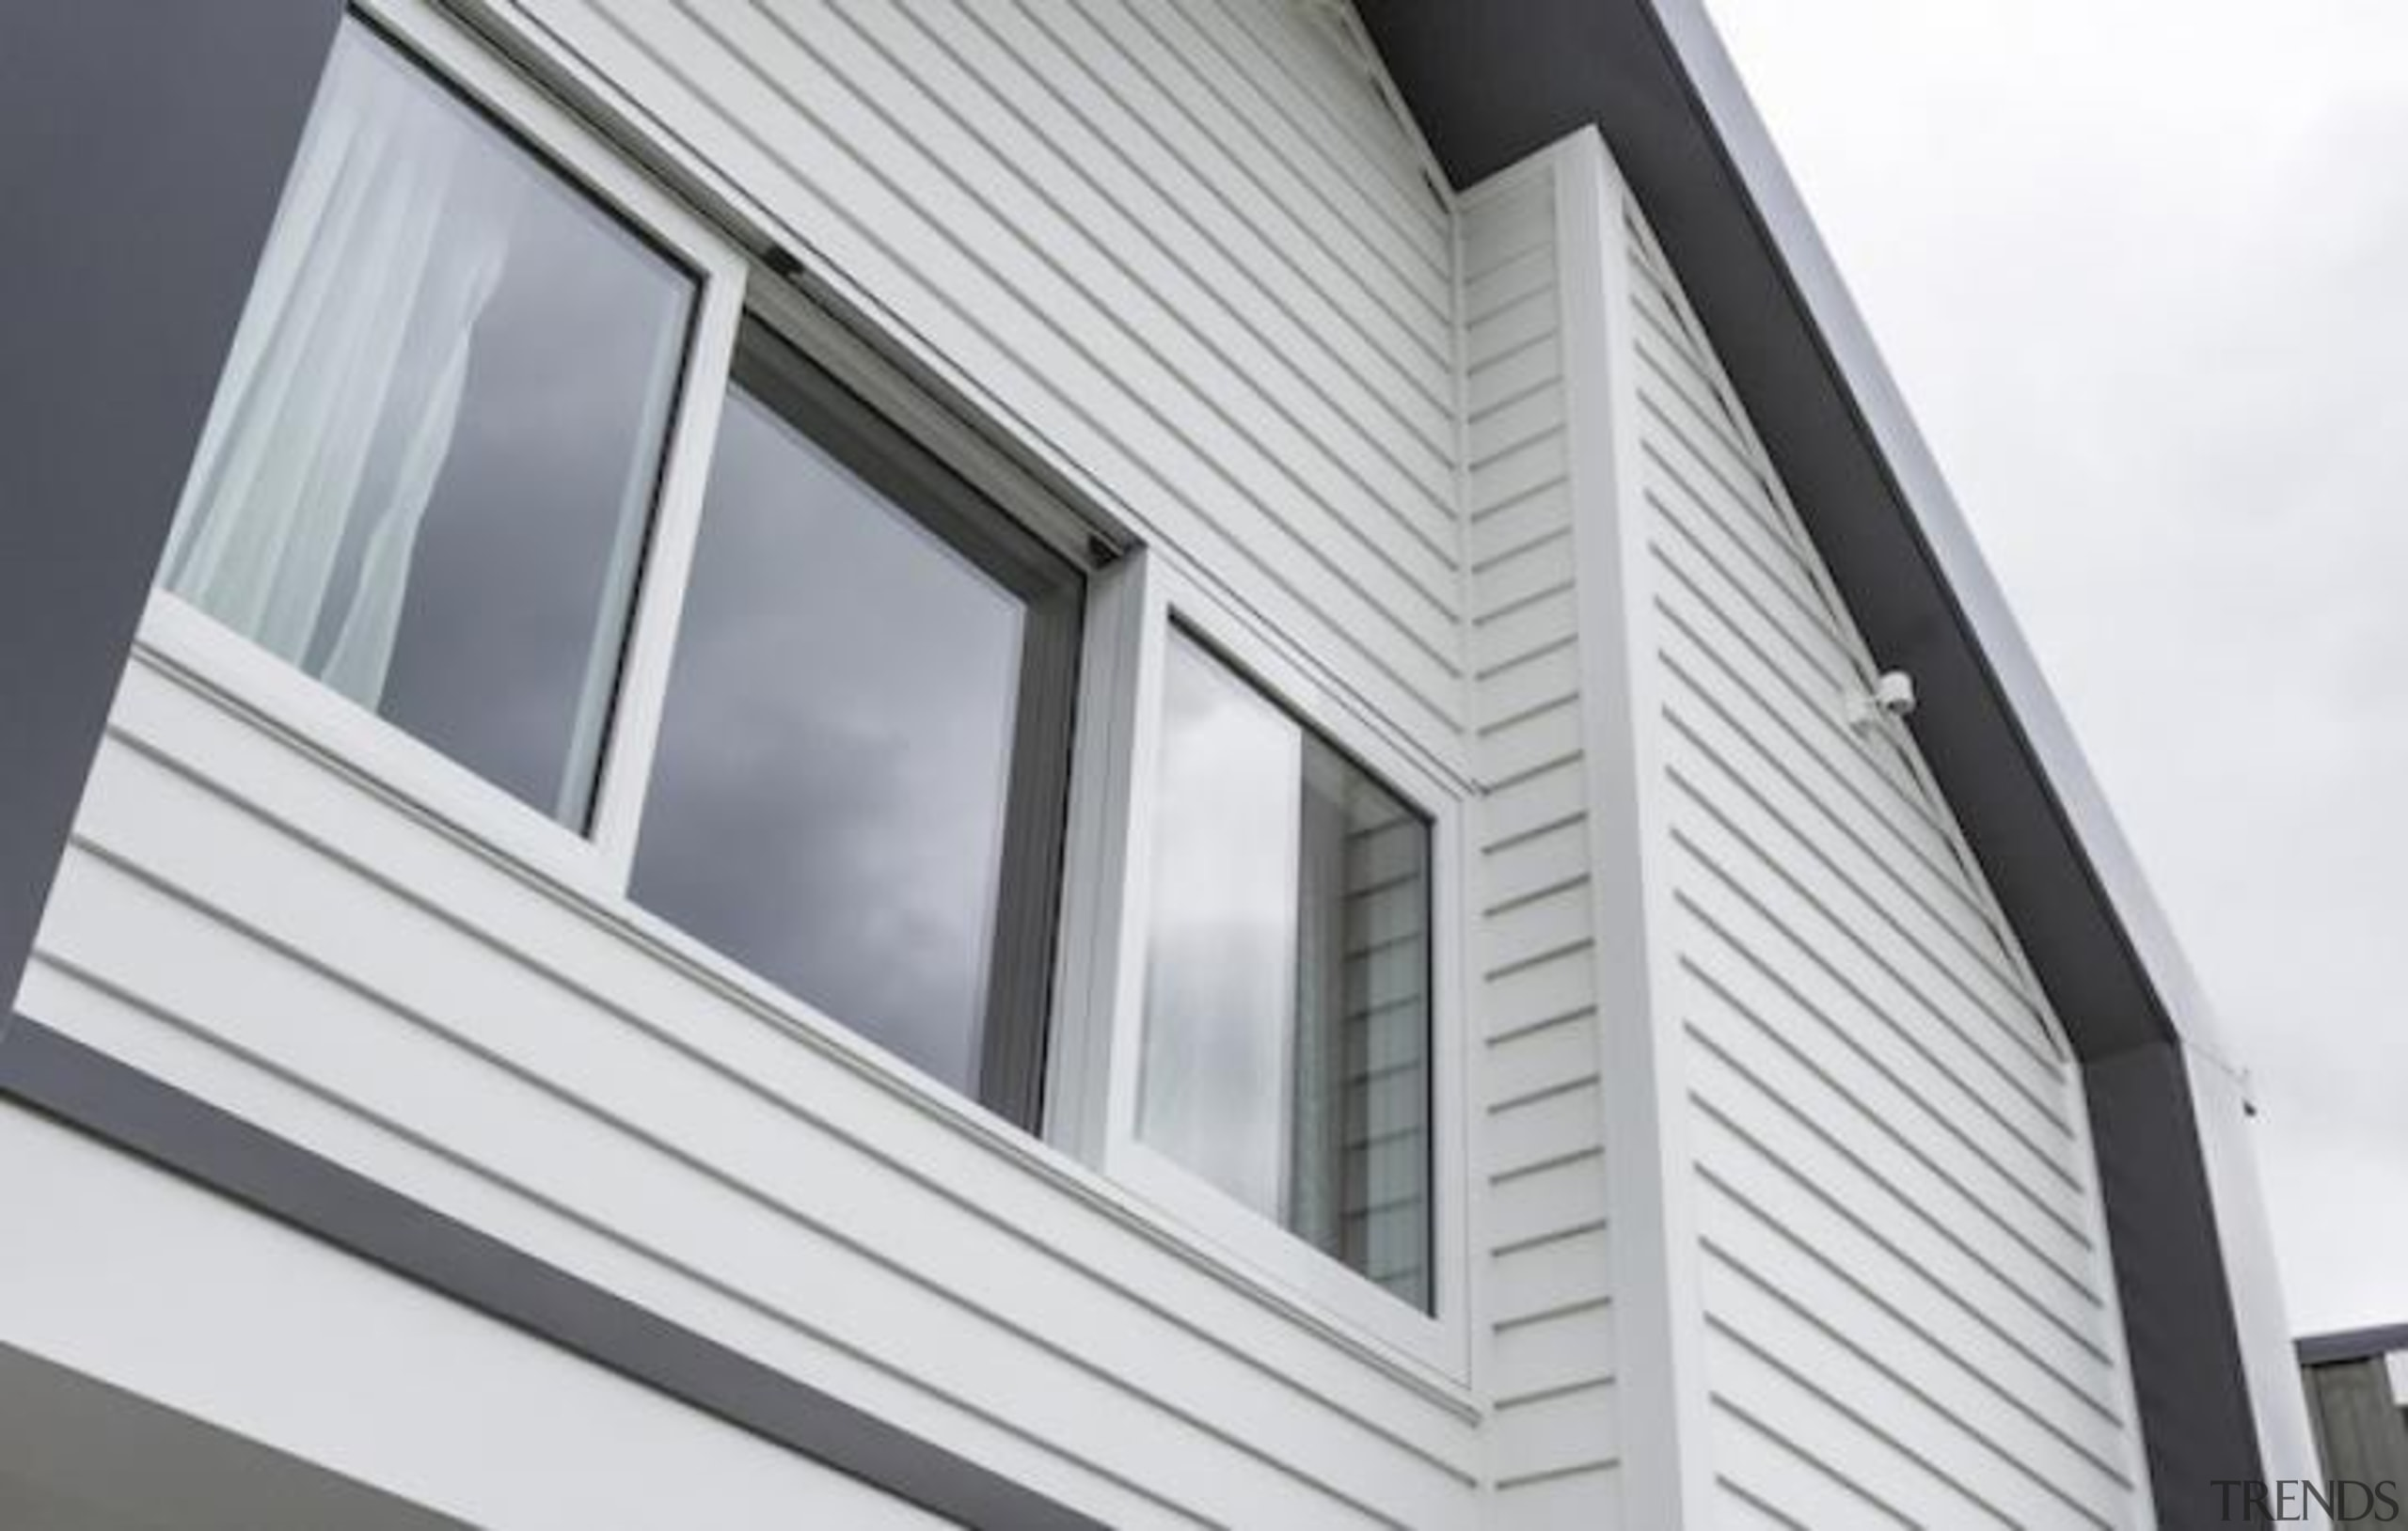 Simpler. Faster. Proven Weathertight. - A-lign Concealed Fix angle, architecture, building, daylighting, facade, home, house, property, roof, sash window, siding, window, white, gray